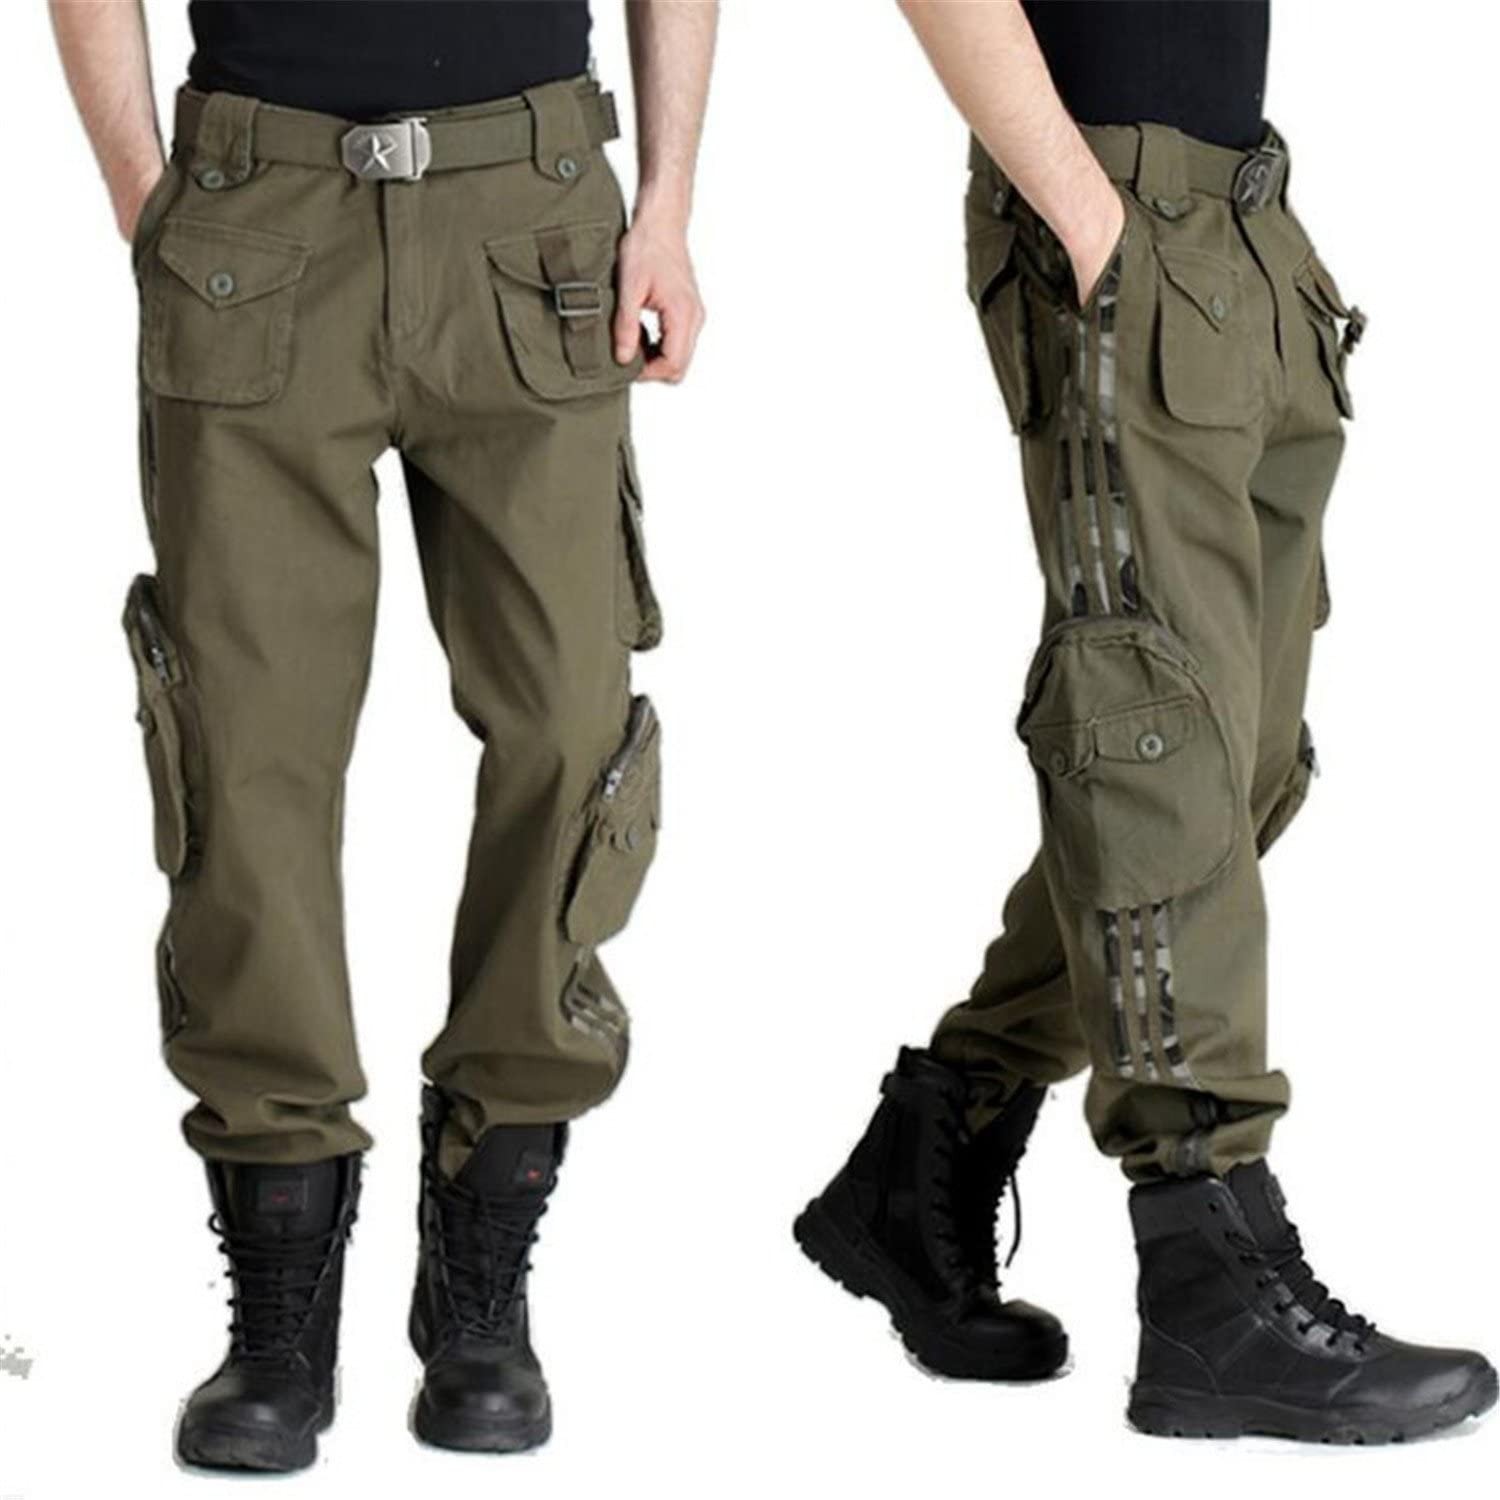 Welcometoo New Men Tactical Trousers Summer Military Tactical Pants Casual Loose Multi-Pockets Pants